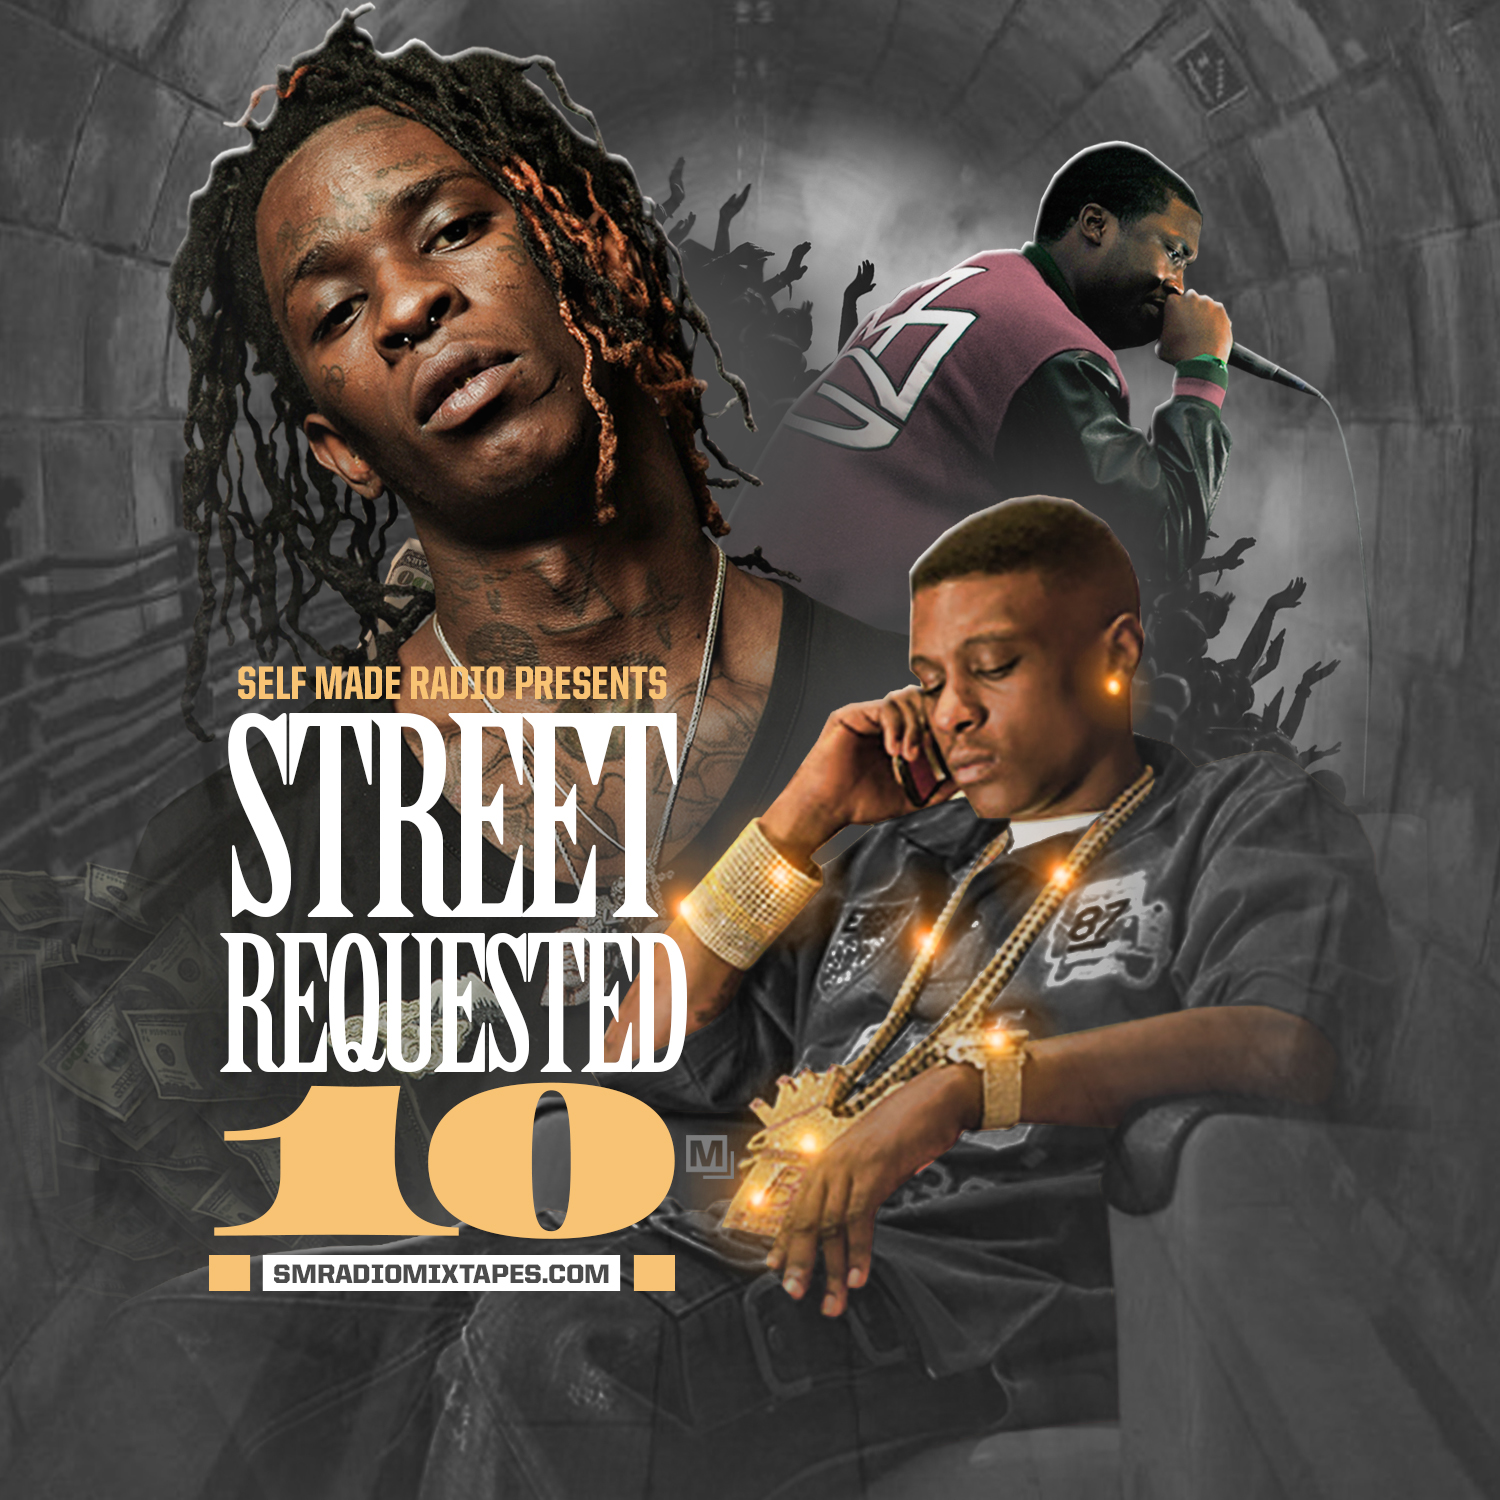 Street Requested 10